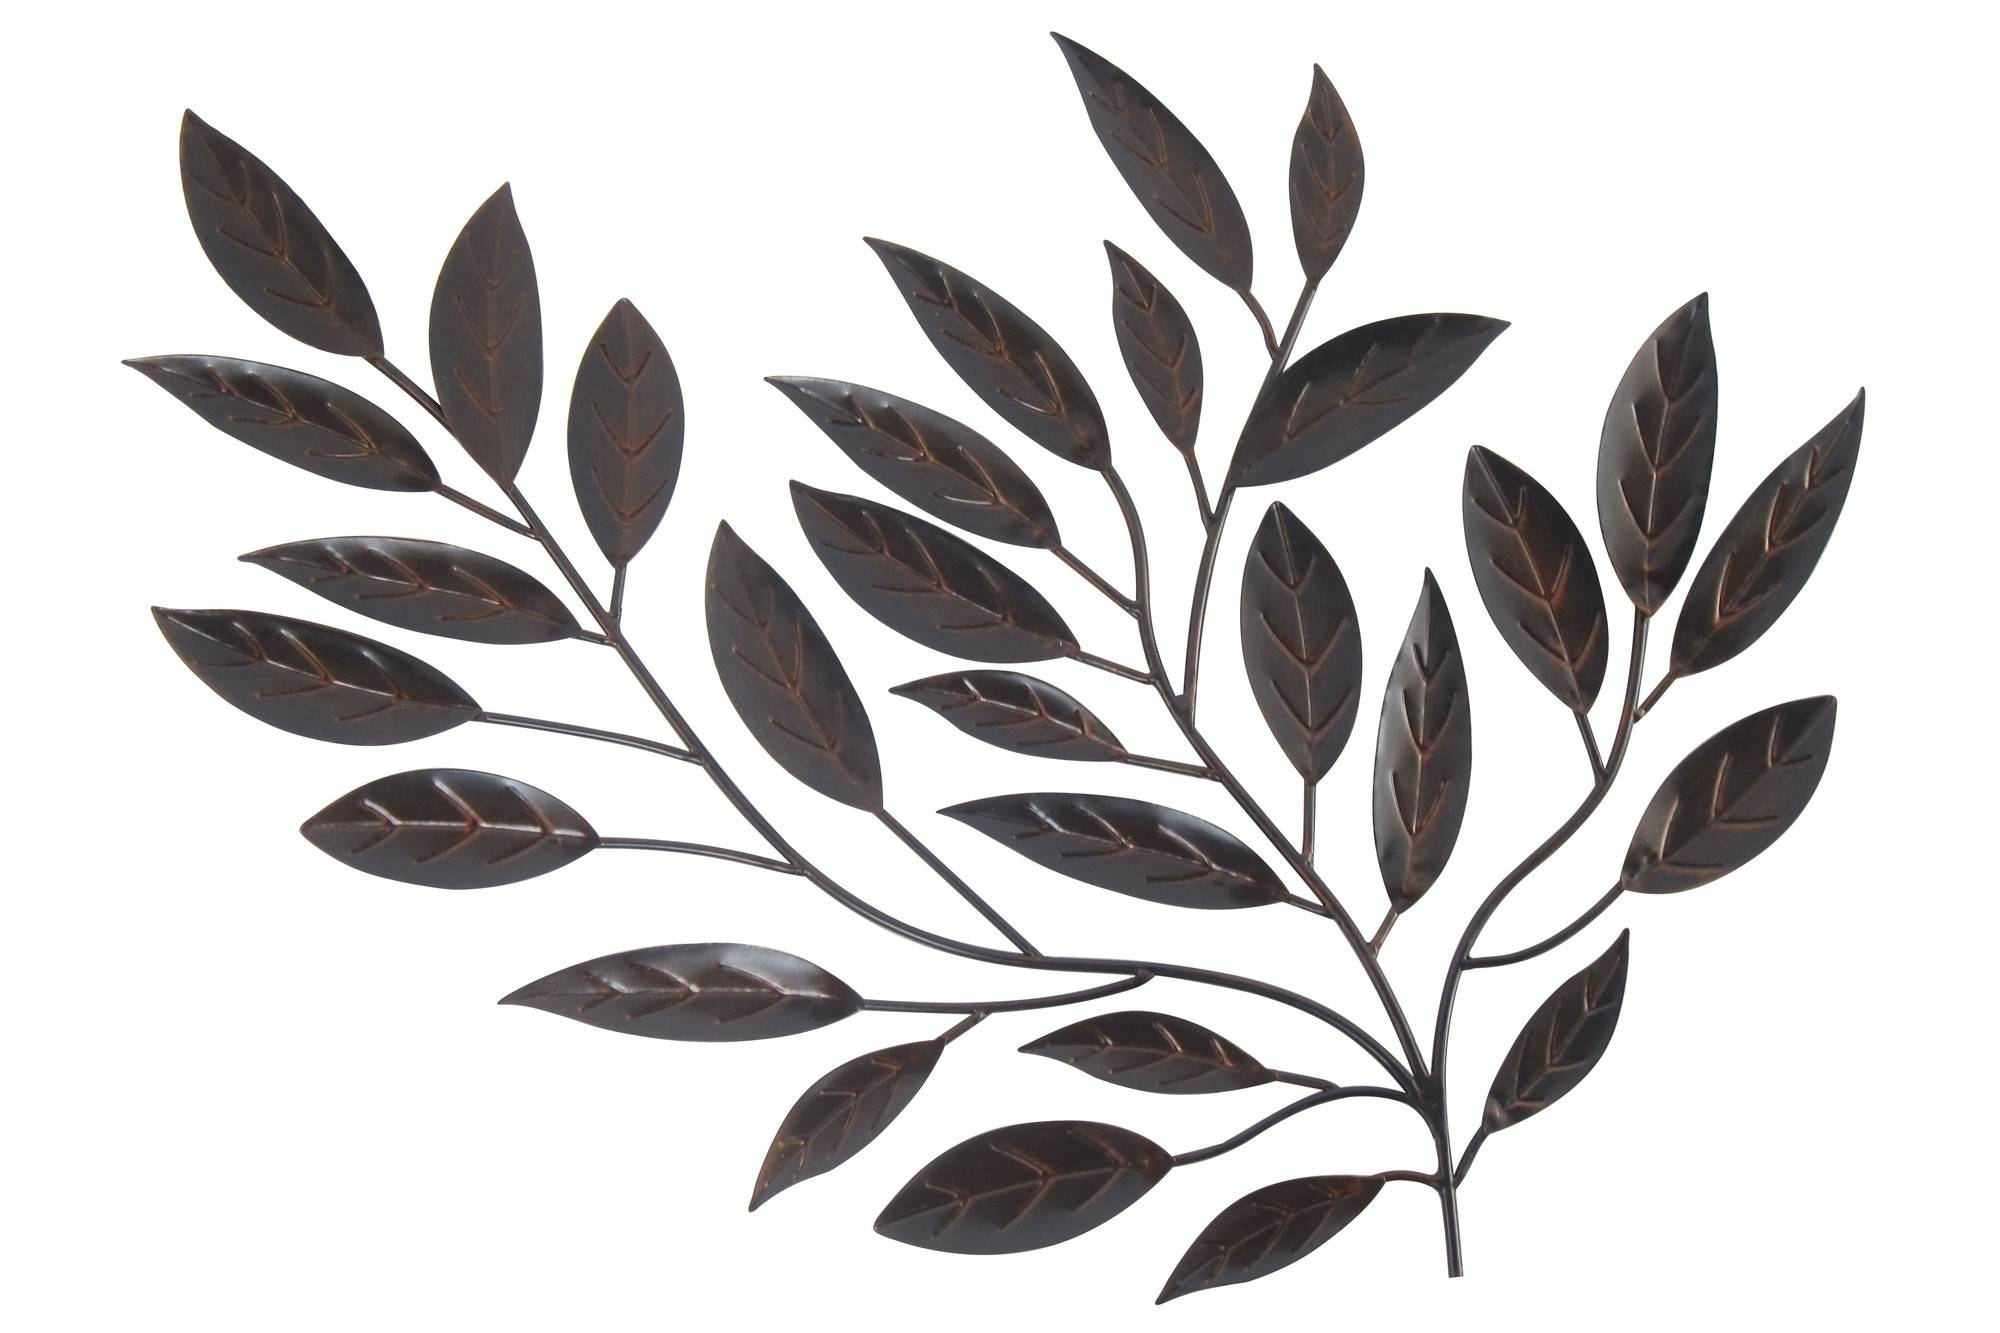 Forged Metal Leaves – Floral Metal Wall Art With Regard To Recent Leaf Metal Wall Art (View 8 of 20)